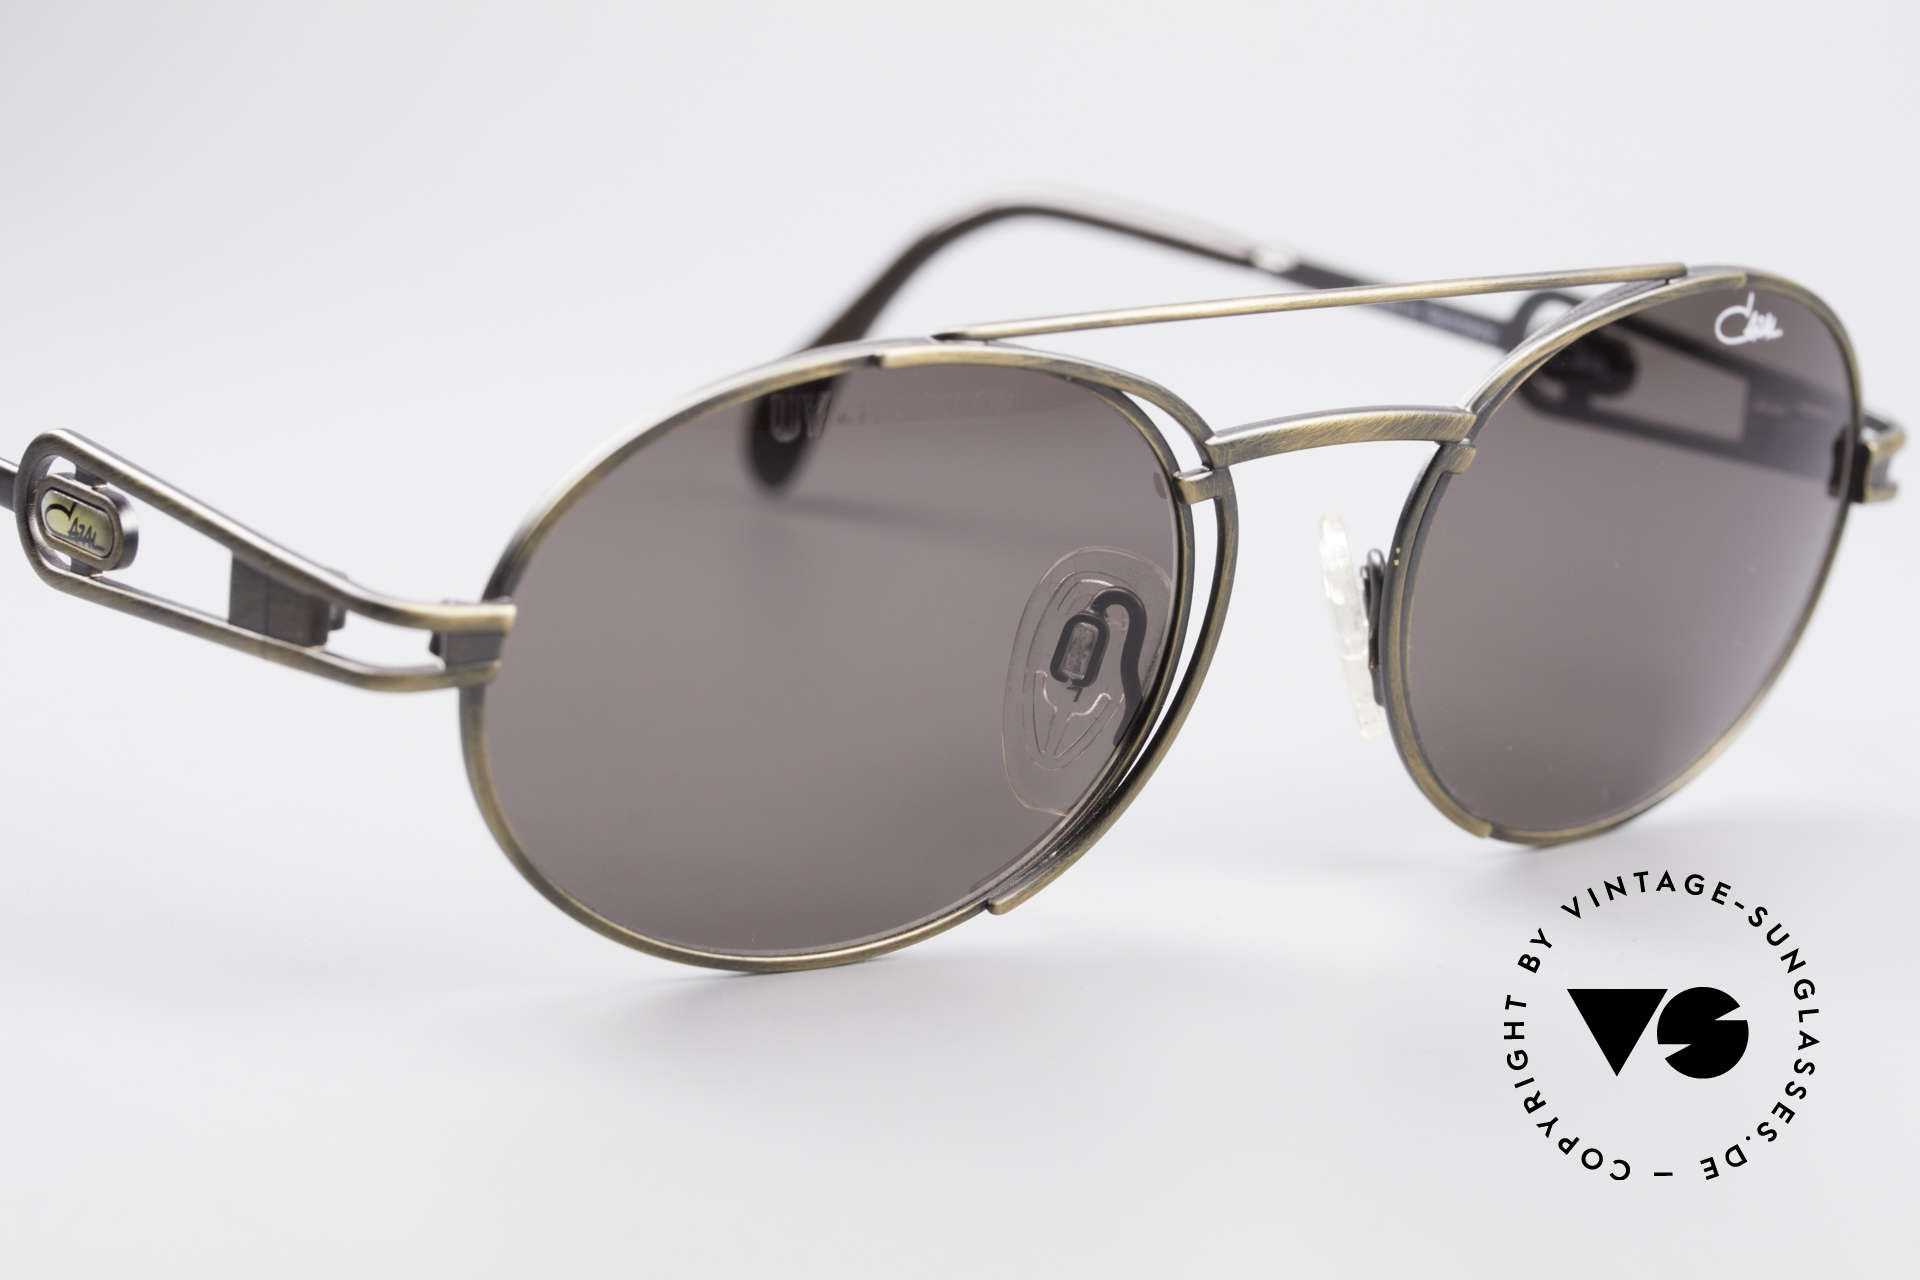 Cazal 965 Oval Steampunk Style Shades, NO RETRO sunglasses, but an authentic old ORIGINAL, Made for Men and Women